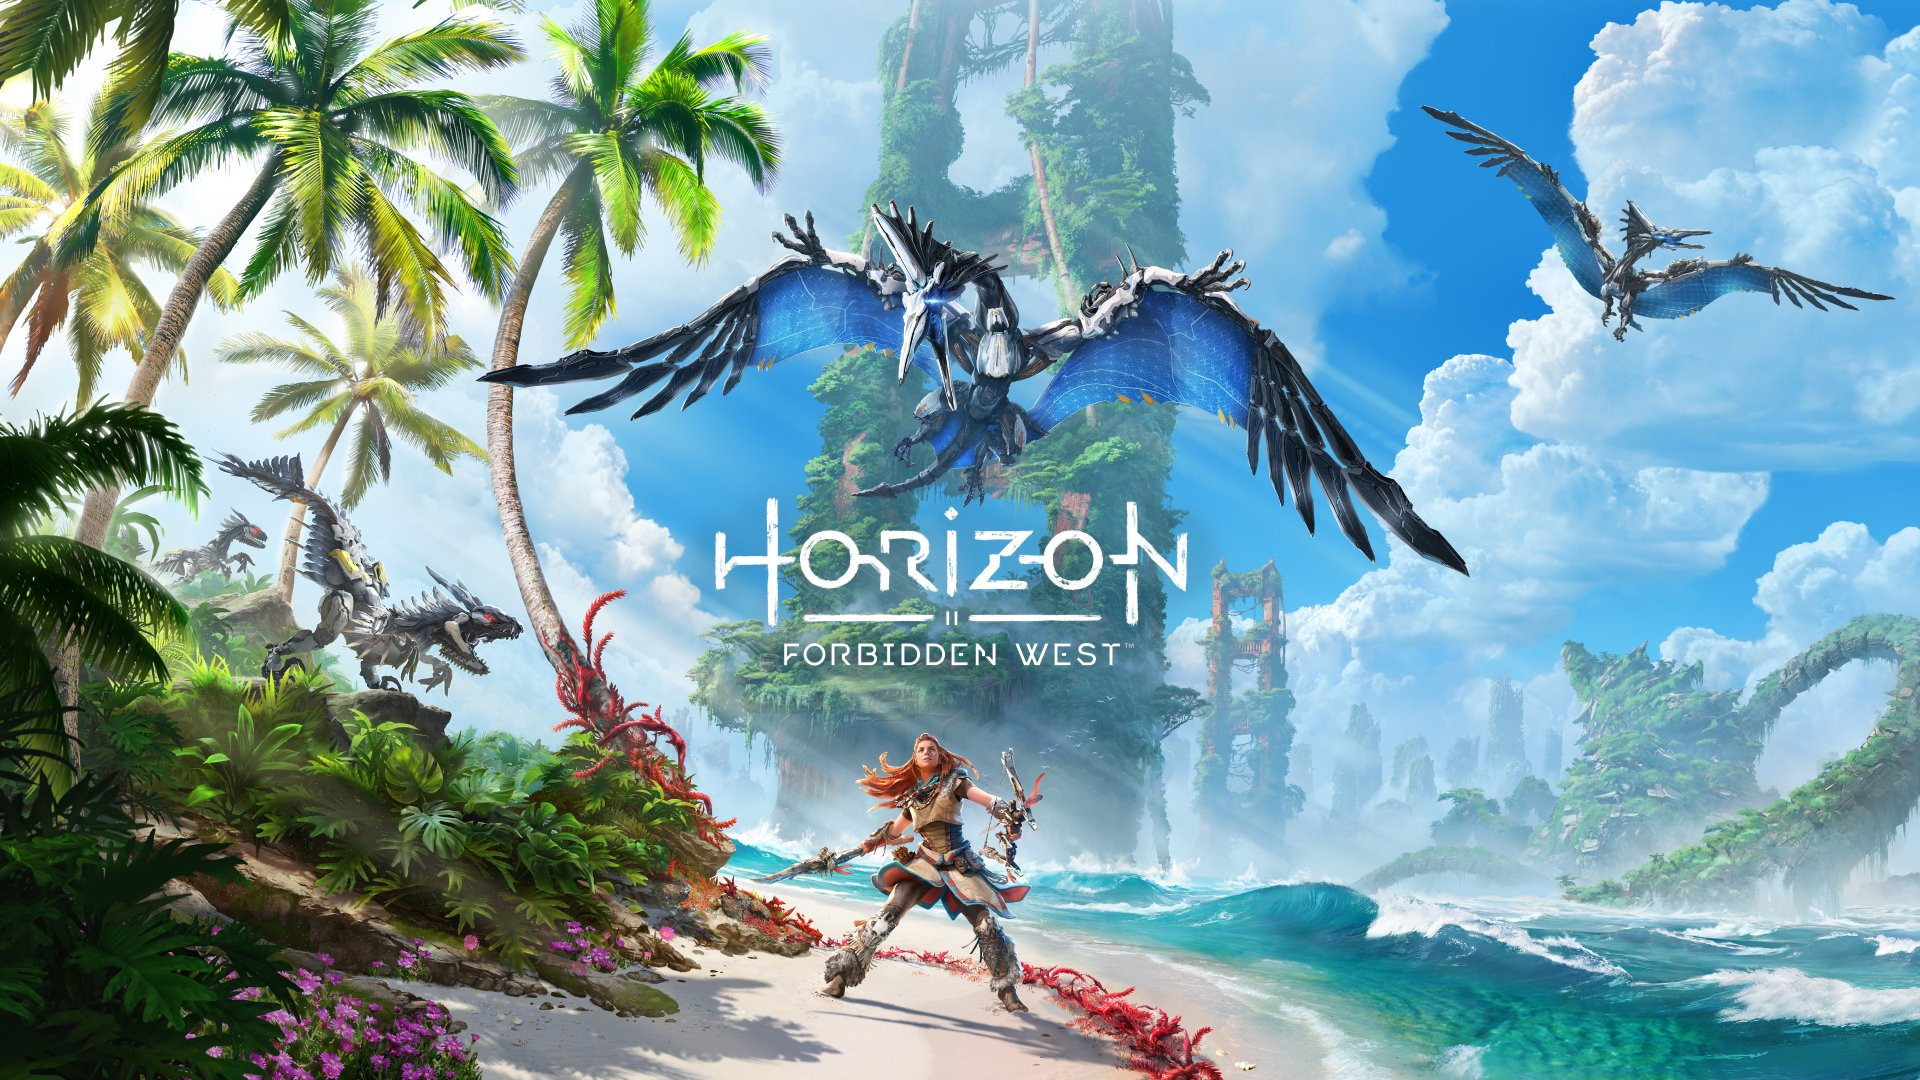 horizon forbidden west 4k wallpaper 2388